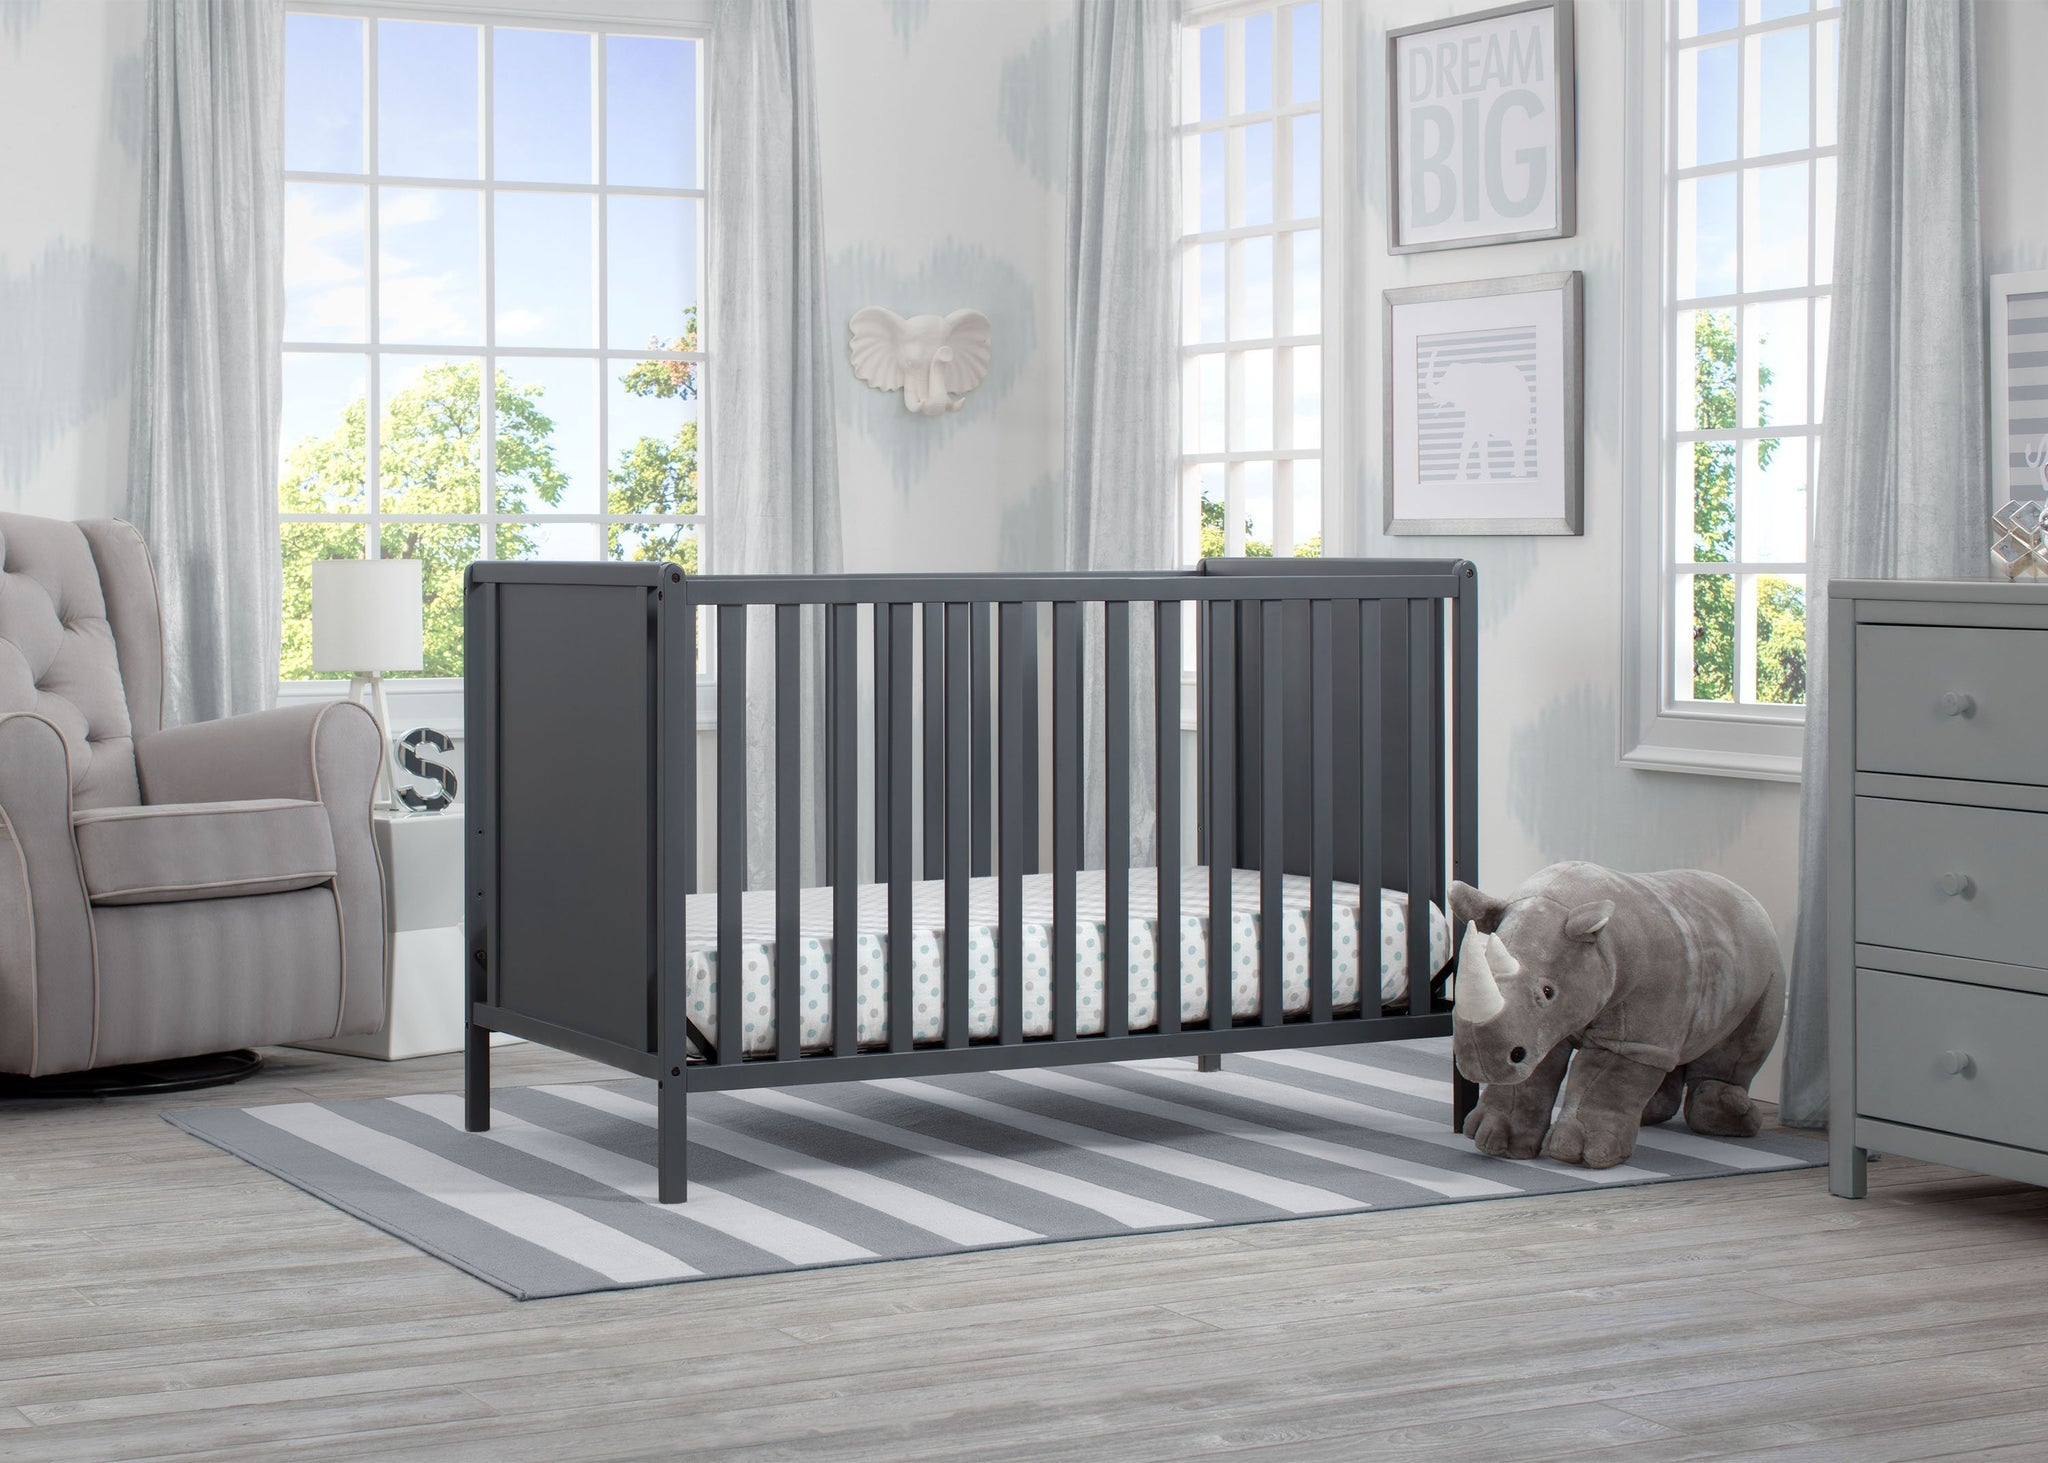 Delta Children Charcoal Grey (029) Heartland Classic 4-in-1 Convertible Crib, Room b1b